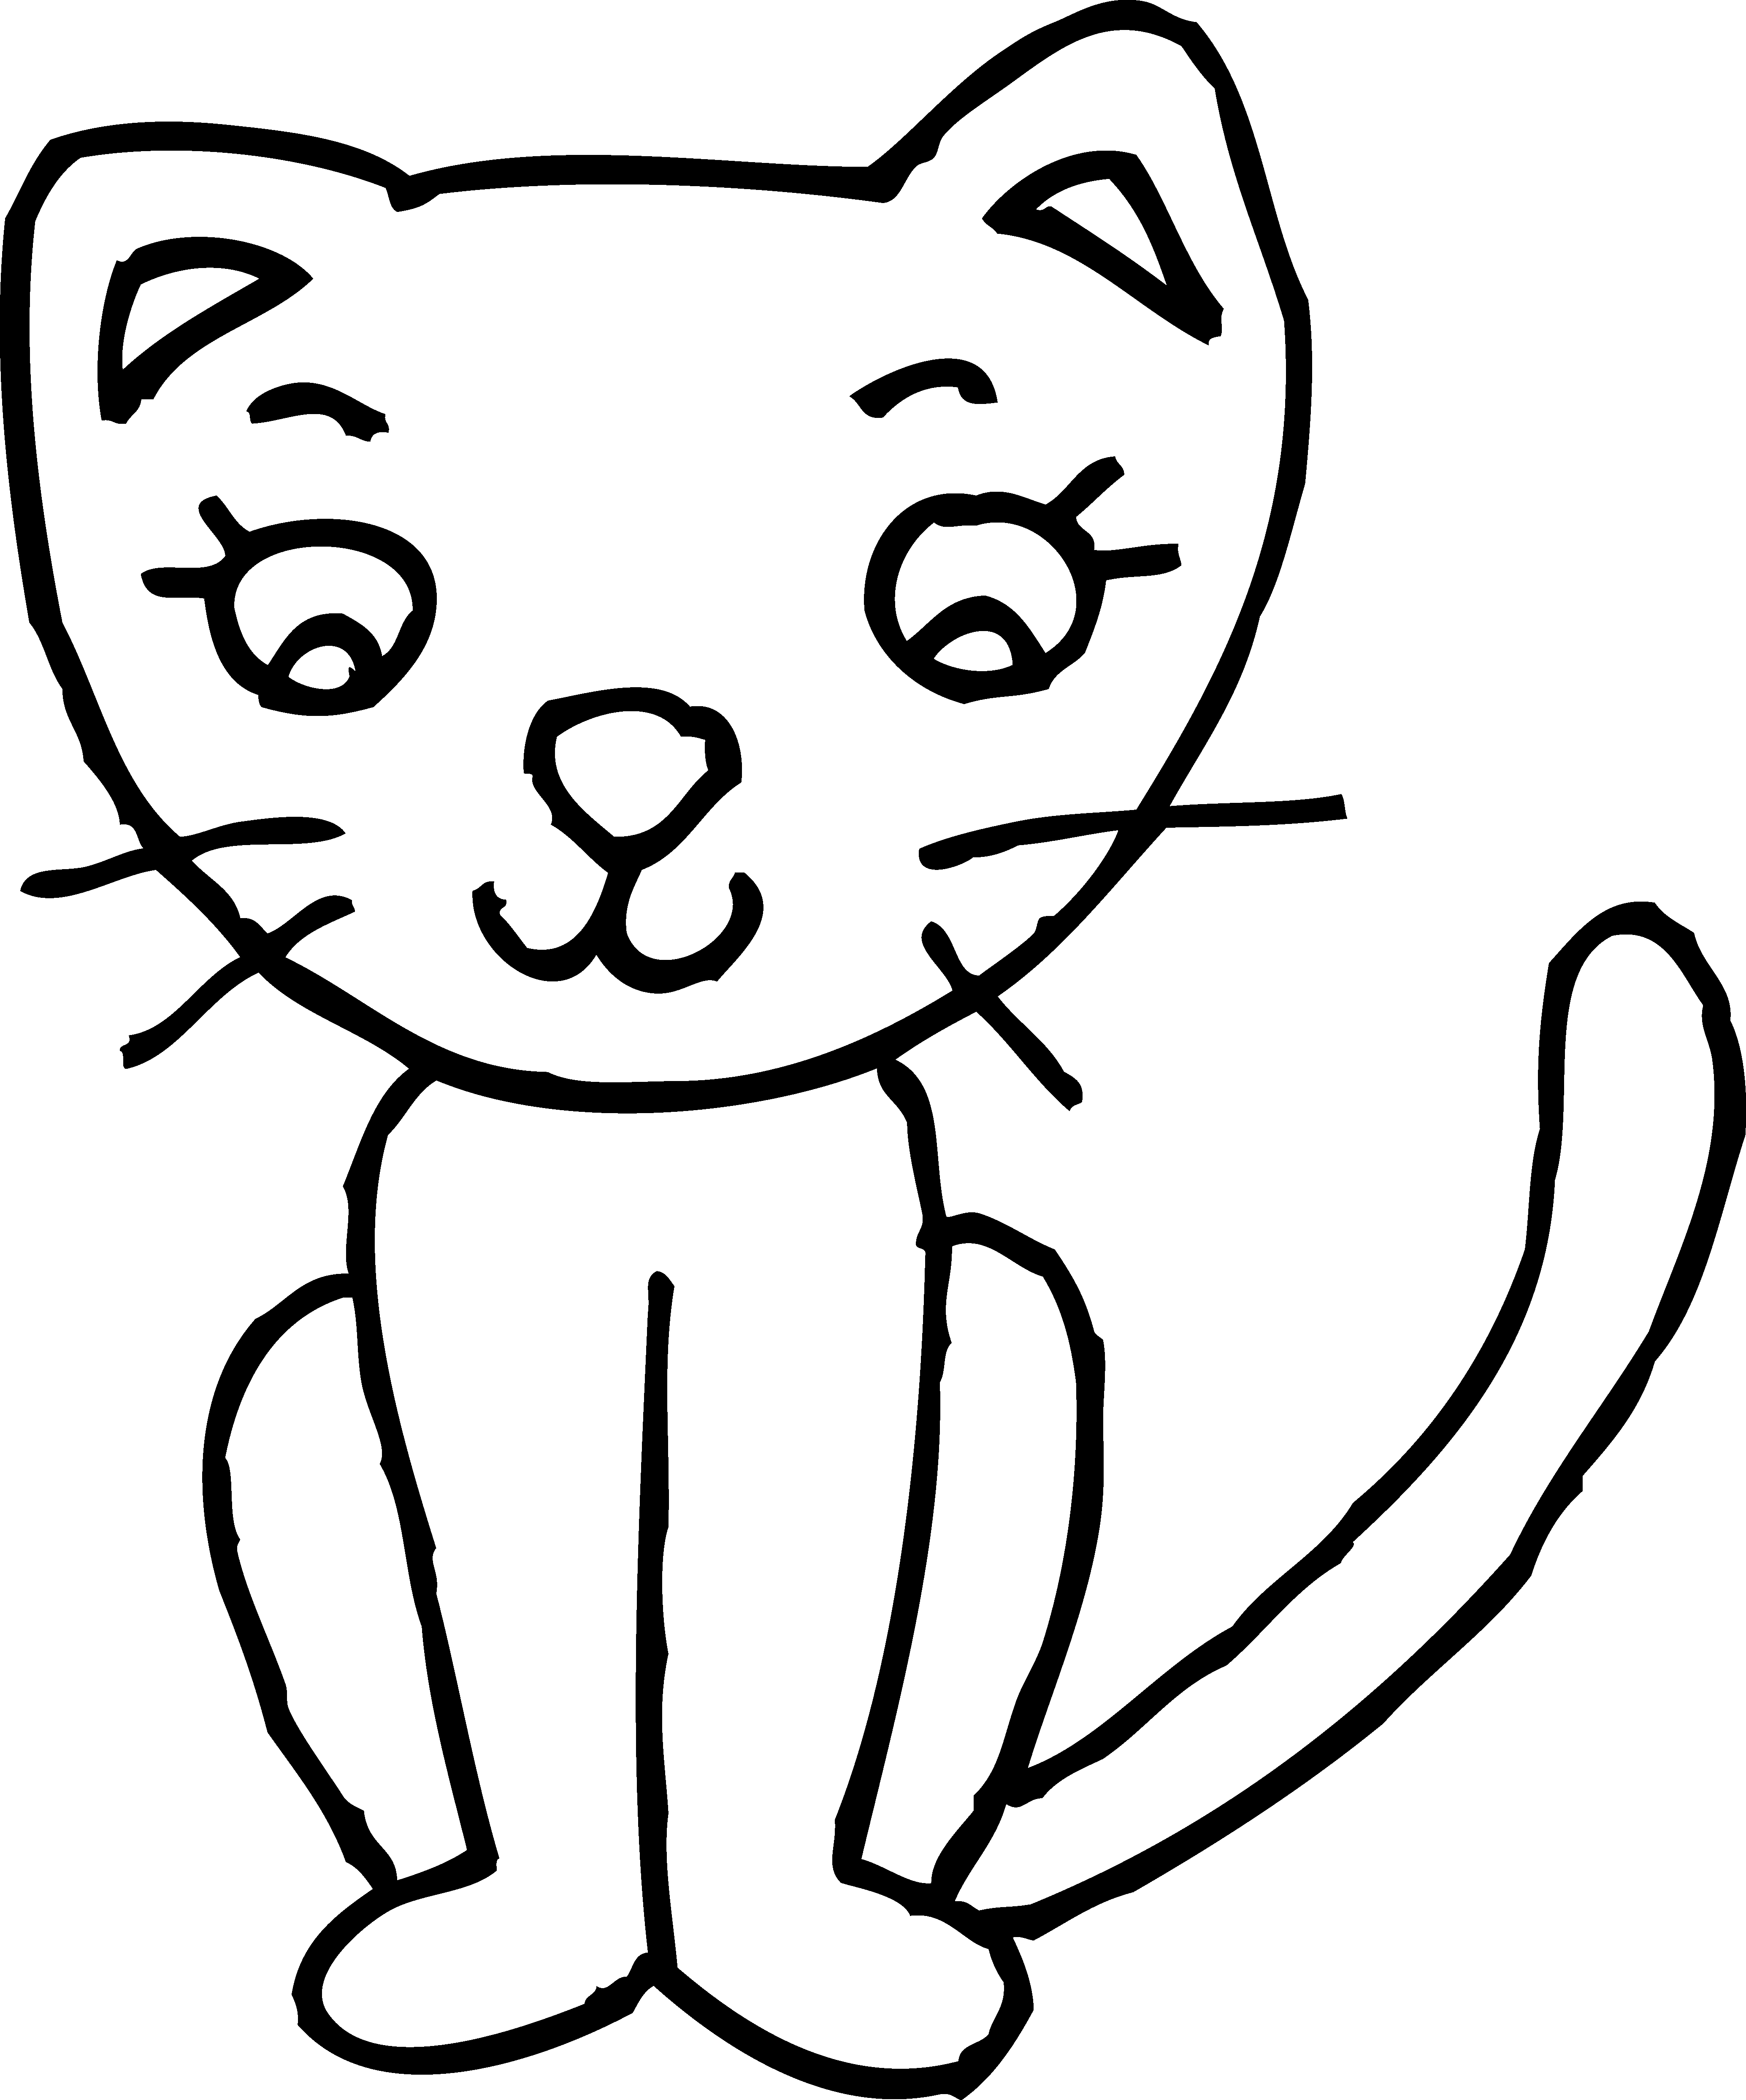 Cat And Dog Black And White Clipart.